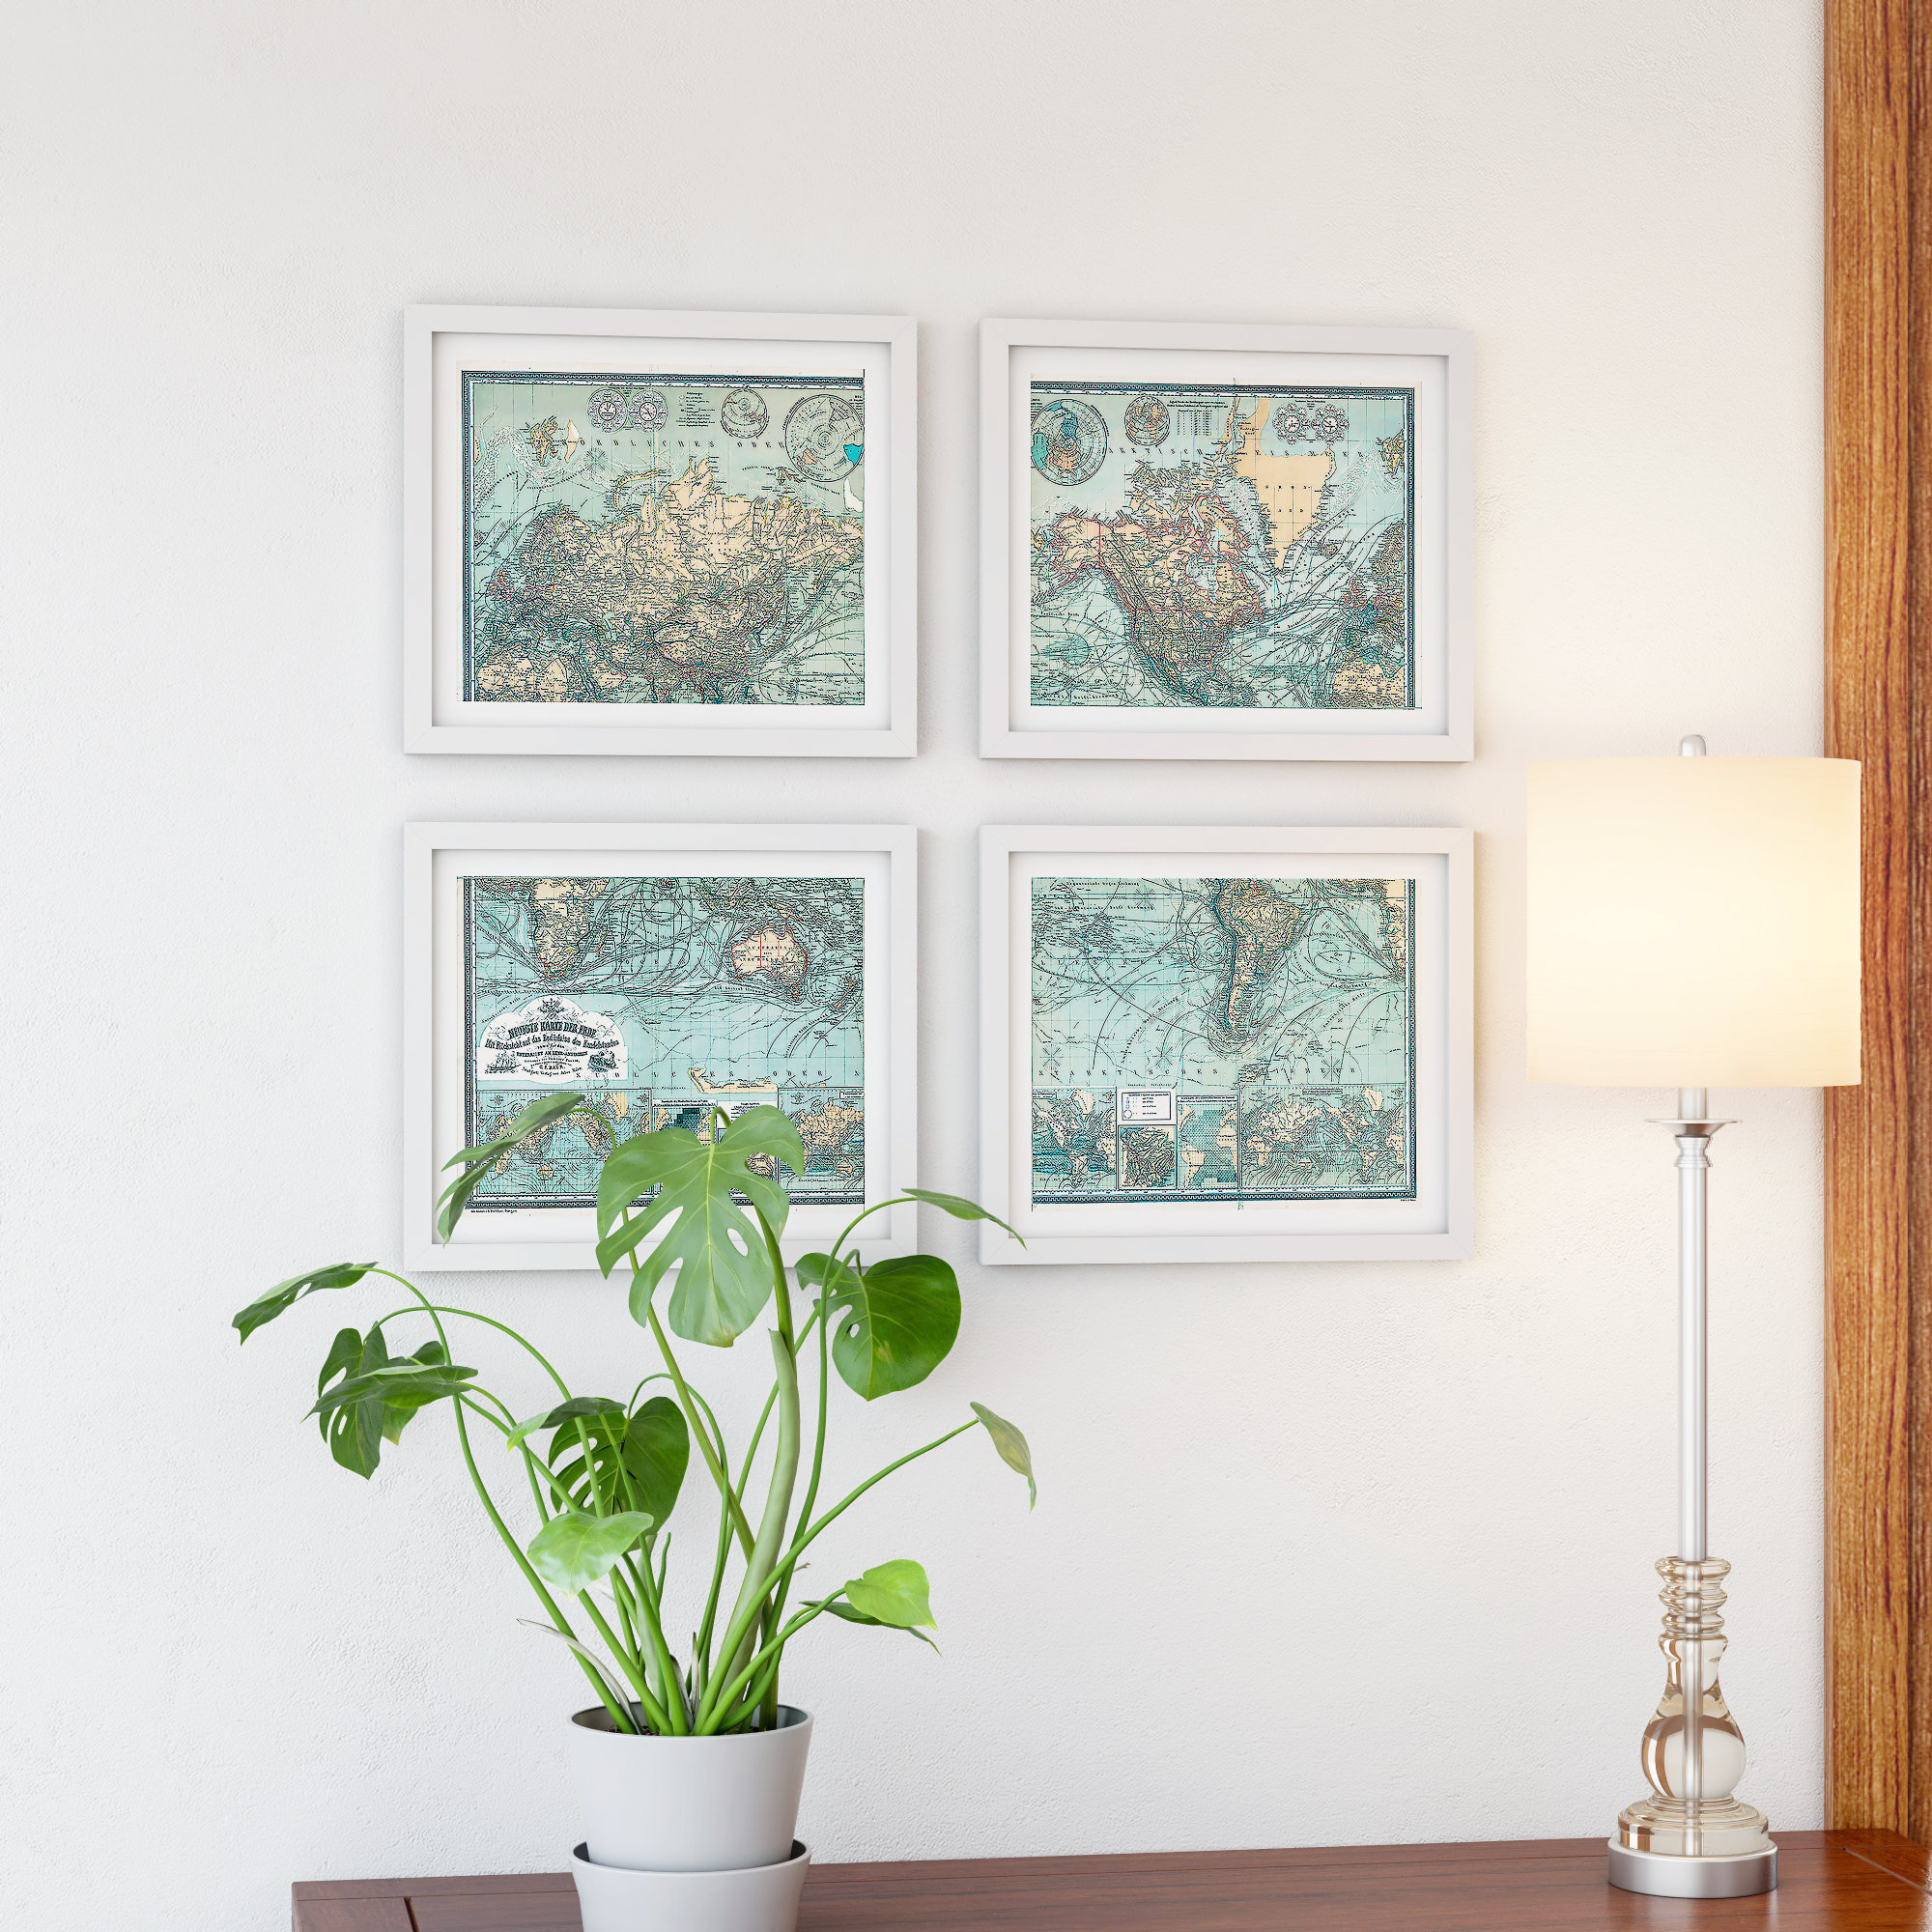 'map' 4 Piece Framed Graphic Art Set Throughout 4 Piece Wall Decor Sets By Charlton Home (View 2 of 30)